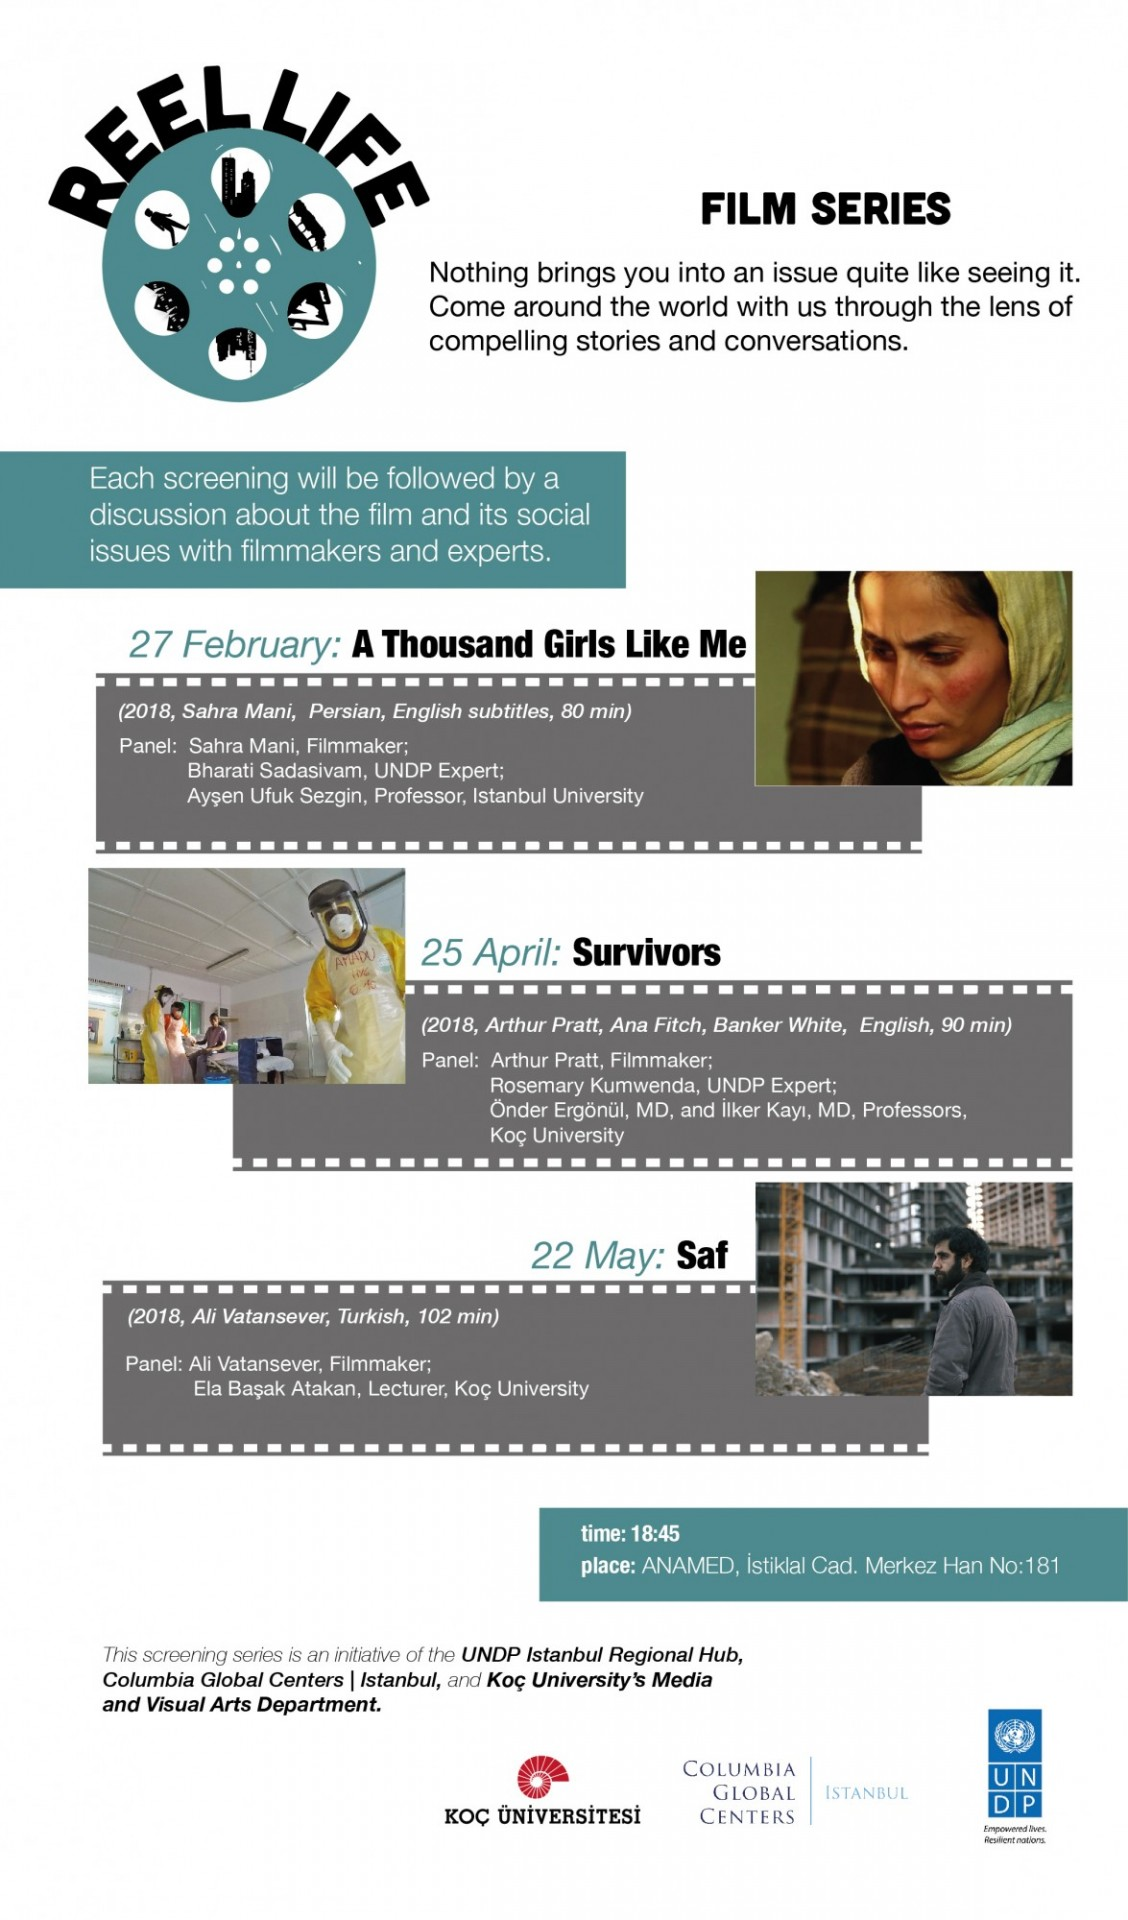 ReelLife Film Series